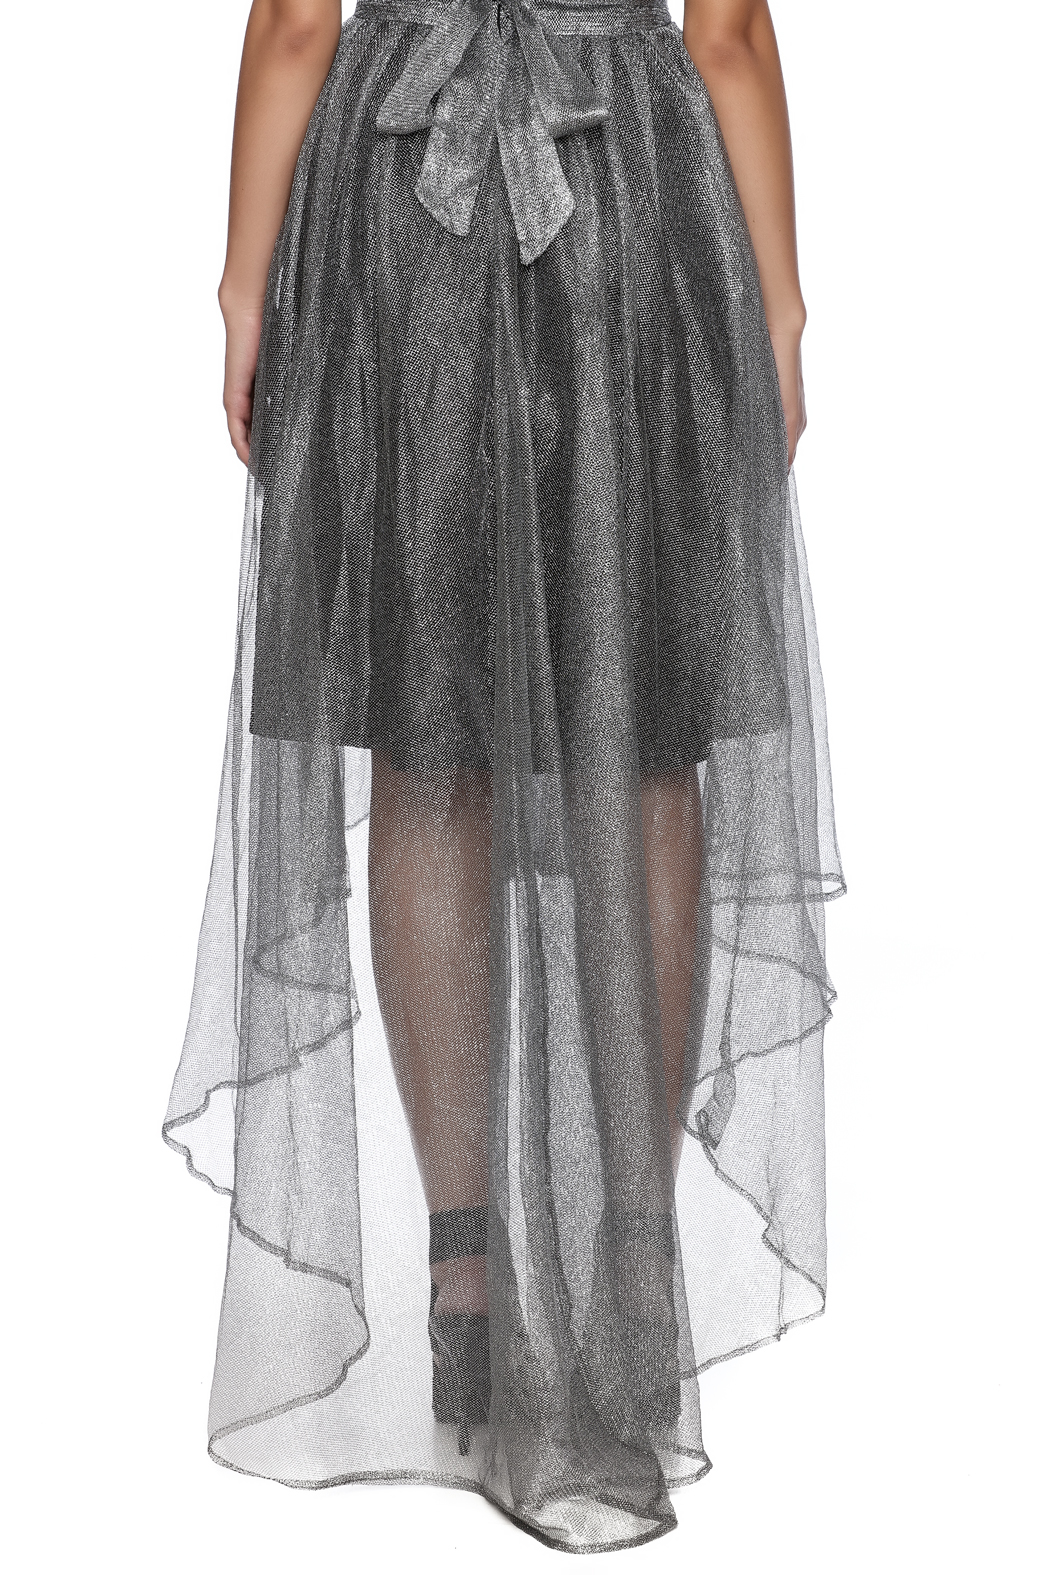 7877879774 Gracia Silver Tulle Skirt from Guilford by A s Unique Boutique ...